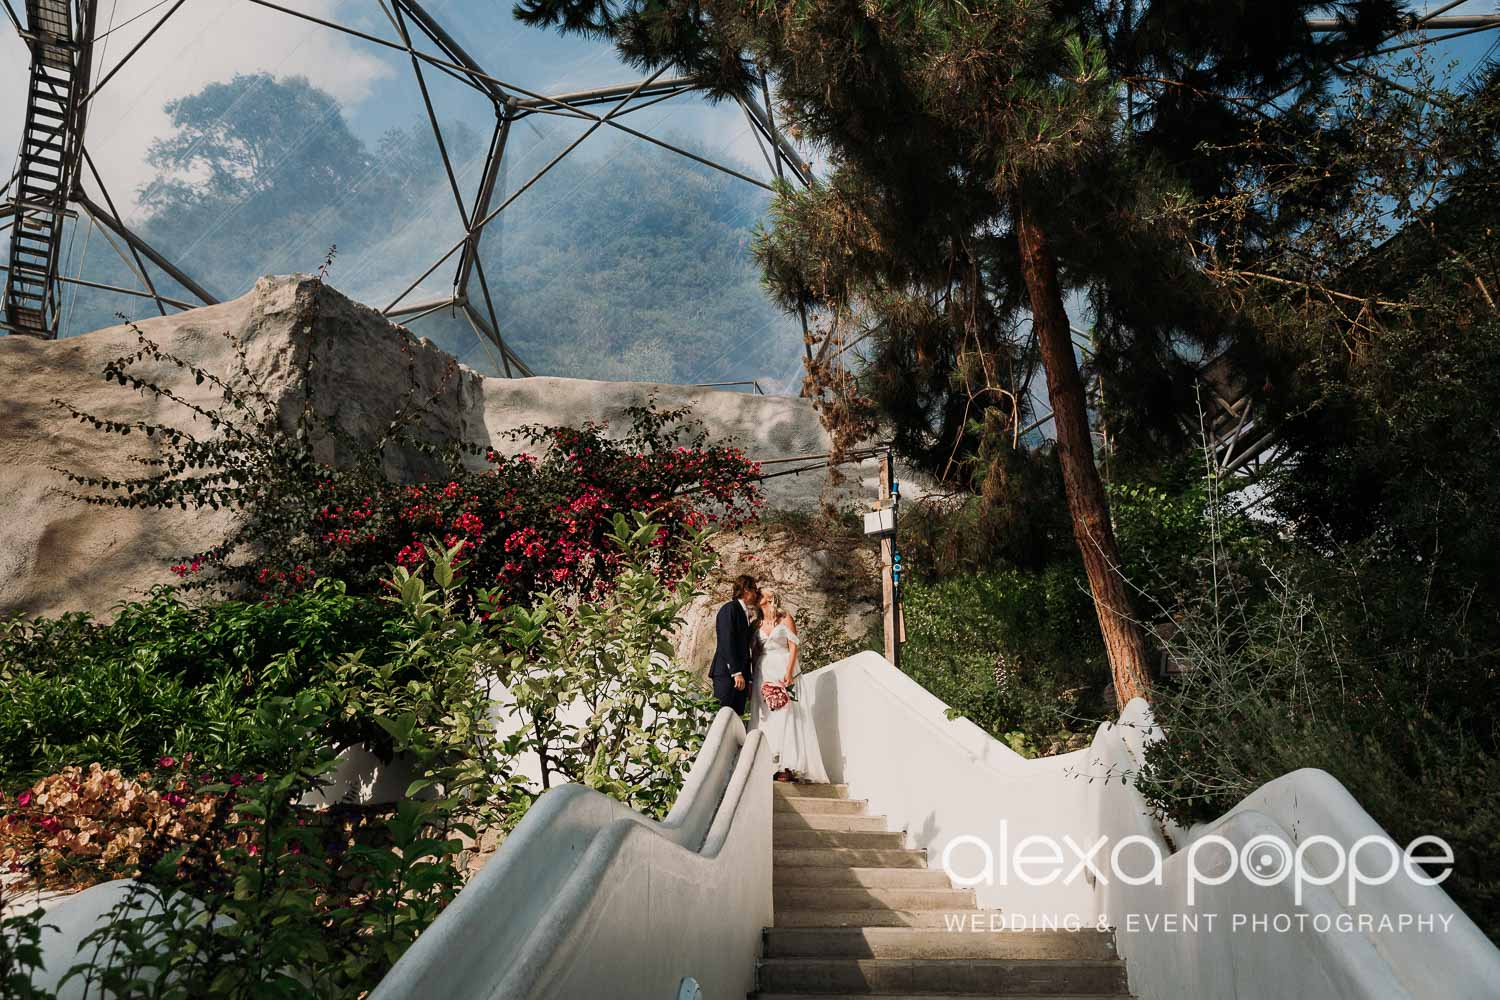 VA_wedding_edenproject_carnglaze_62.jpg